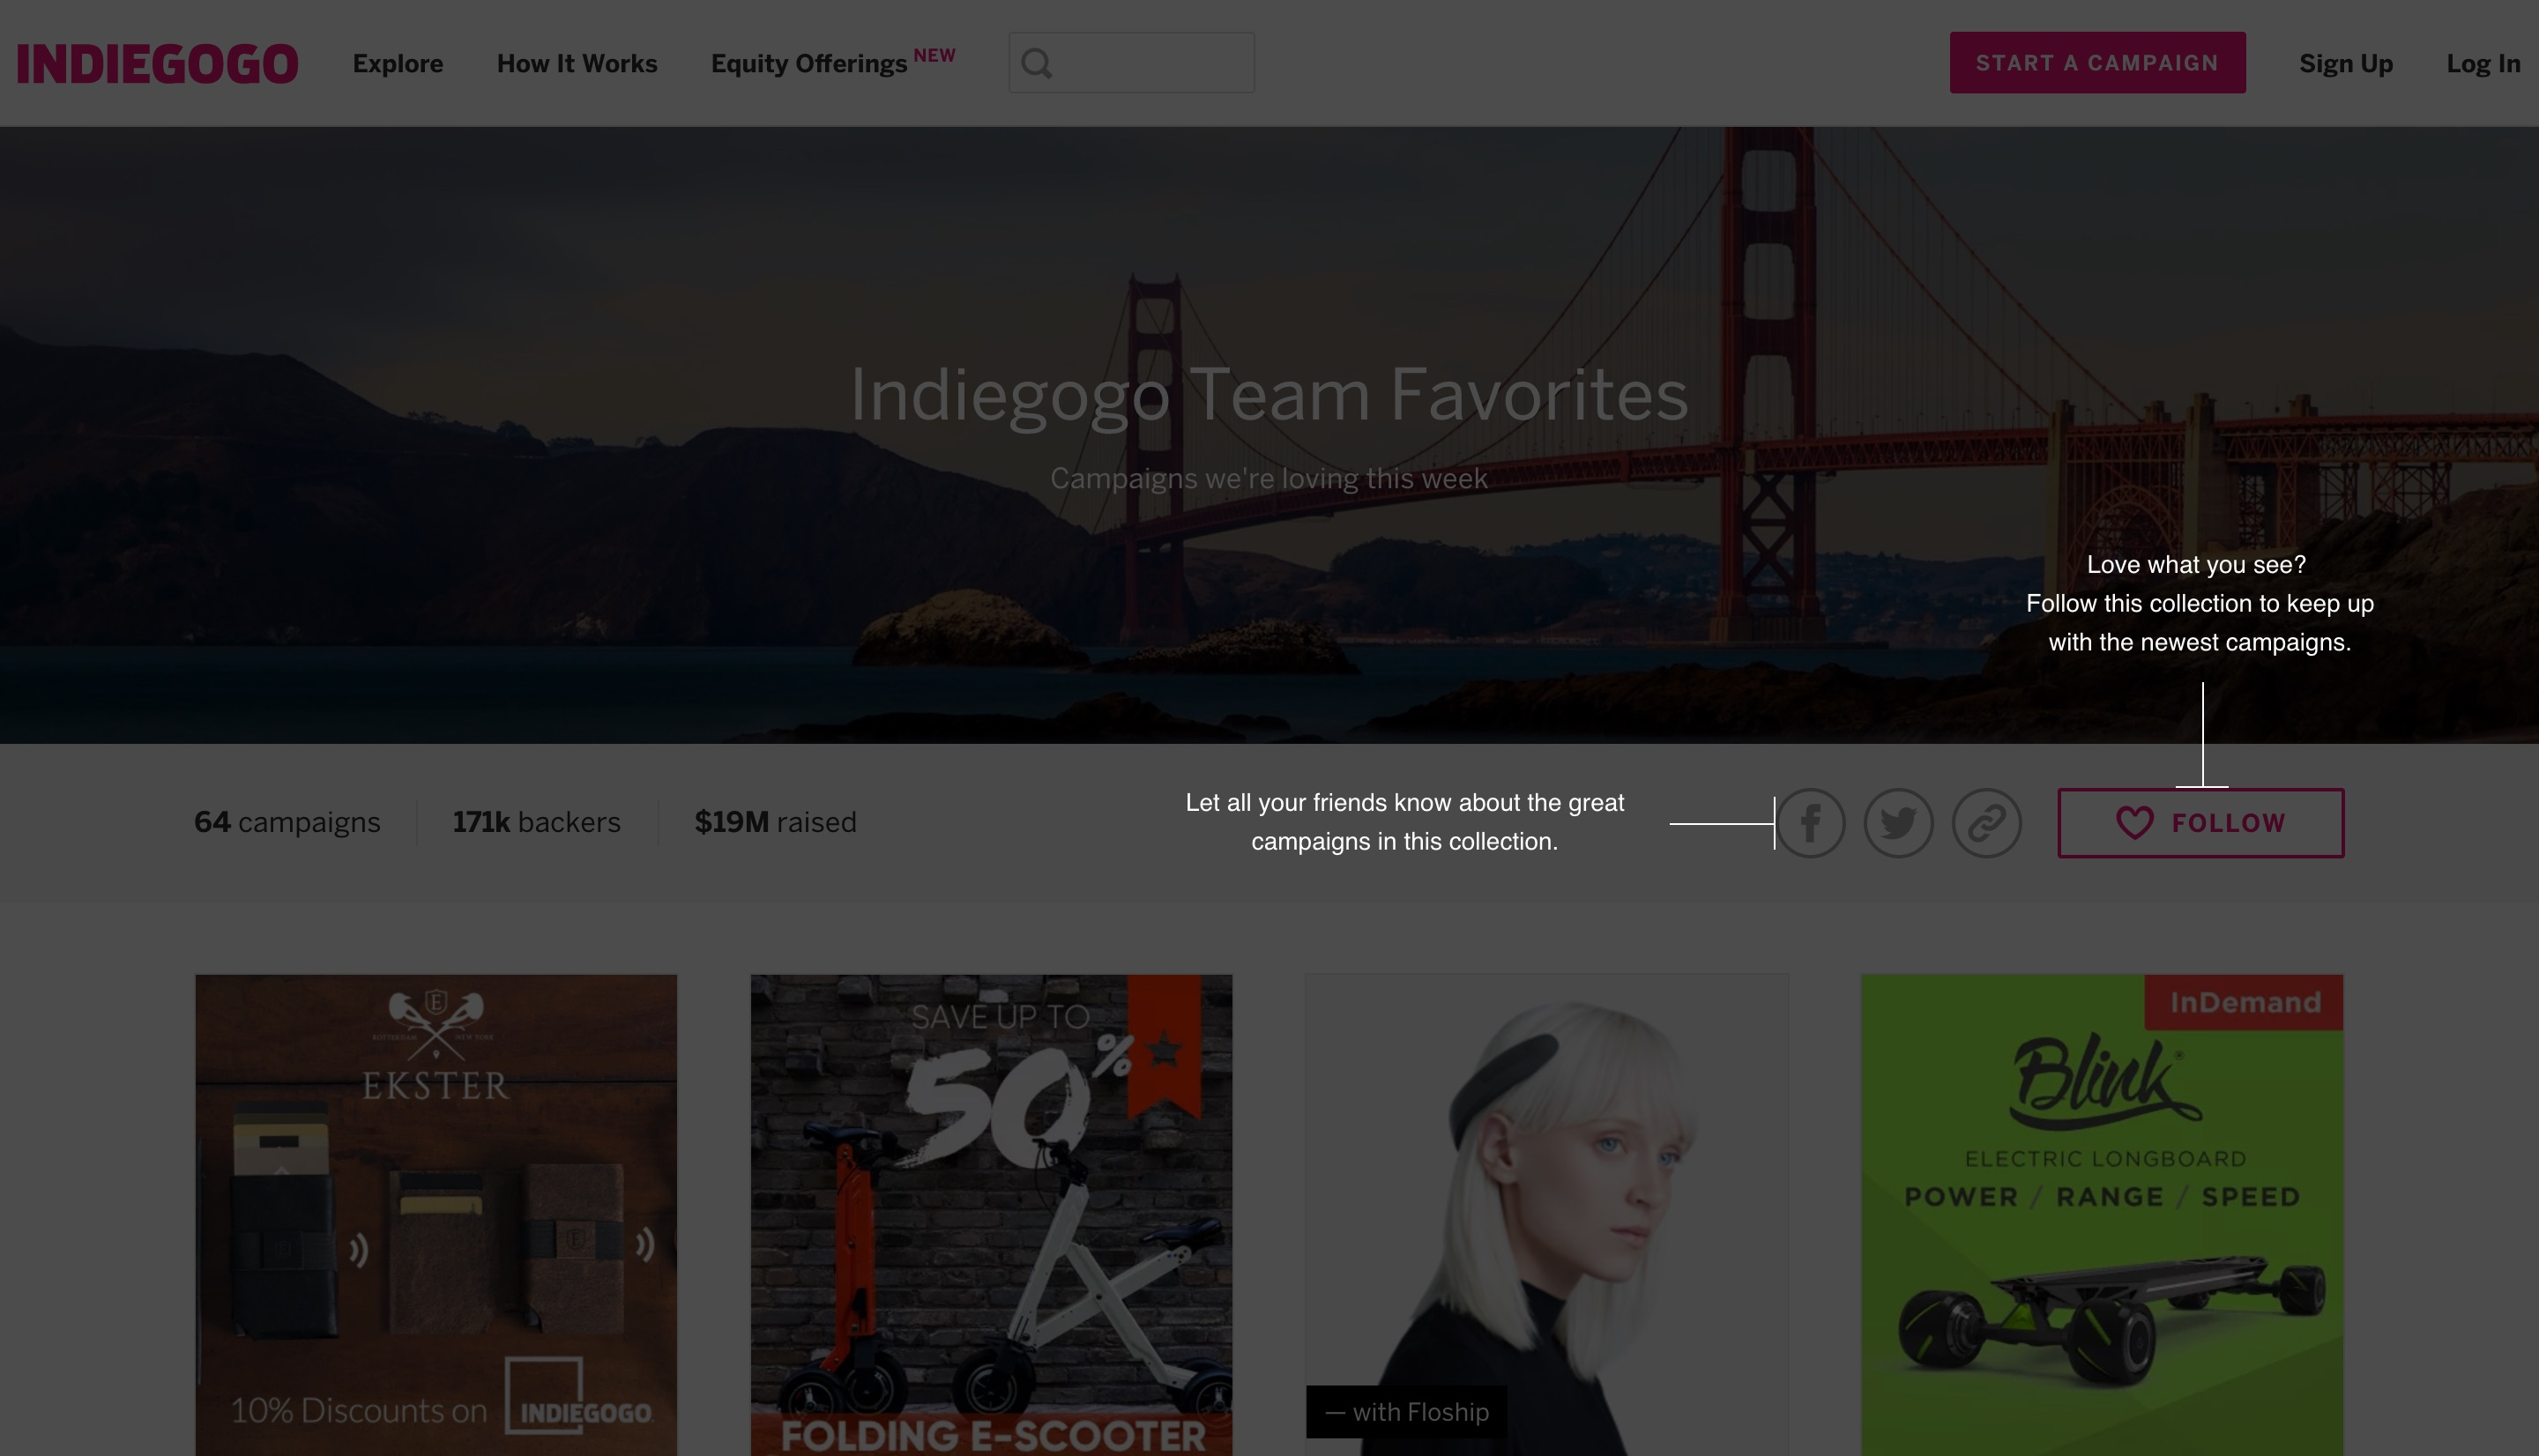 This image shows indiegogo's coach marks, which help users discover new features by highlighting important buttons